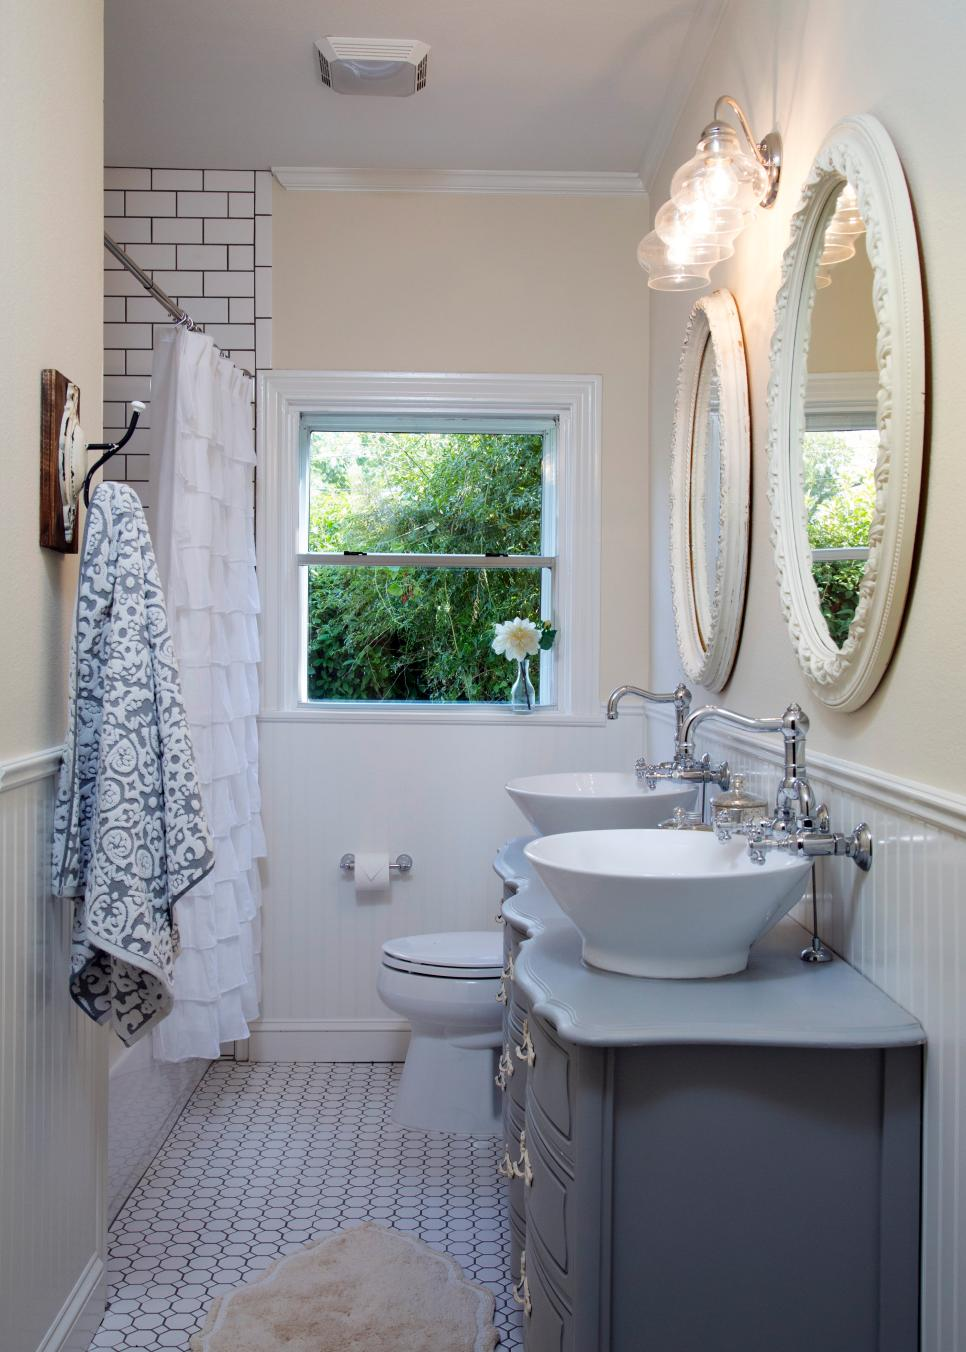 Bathroom Remodels On Fixer Upper fixer upper bathroom before & afters - house of hargrove